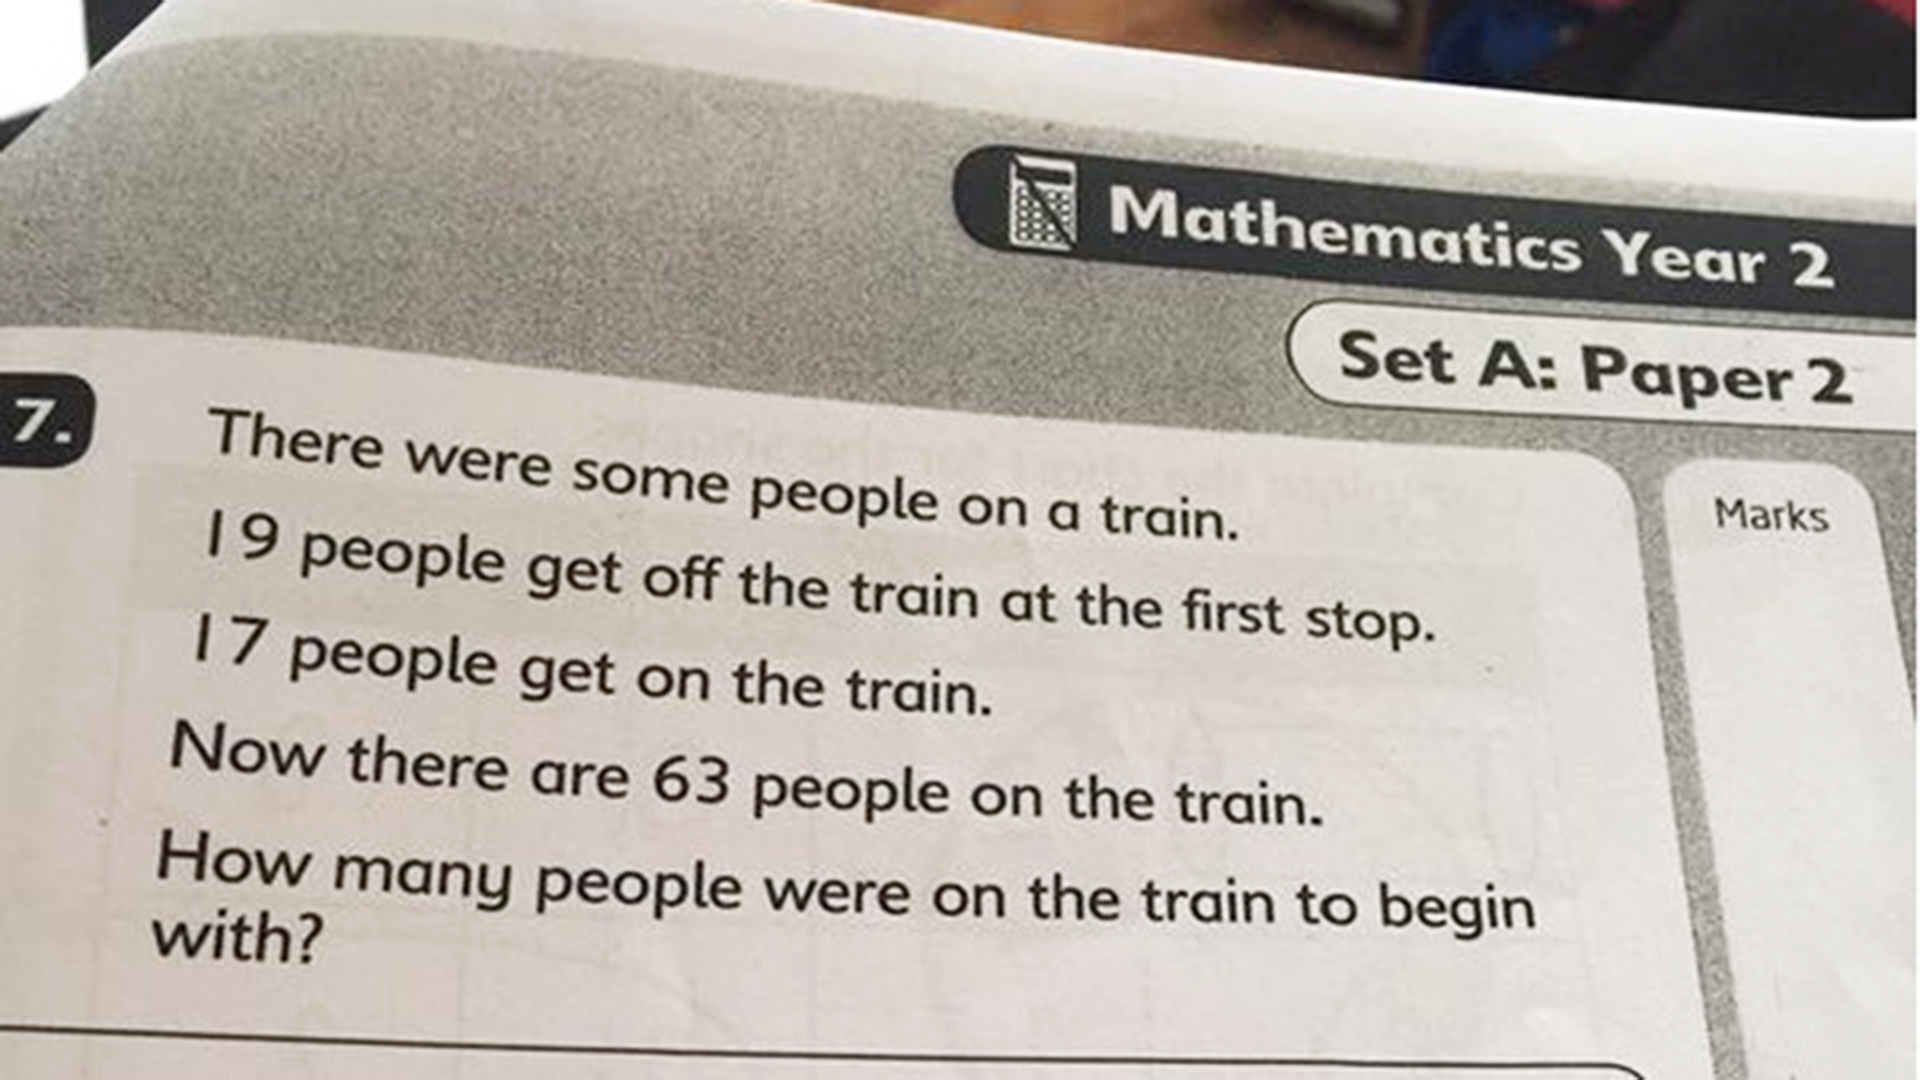 hight resolution of Math problem meant for 7-year-olds puzzles outraged parents